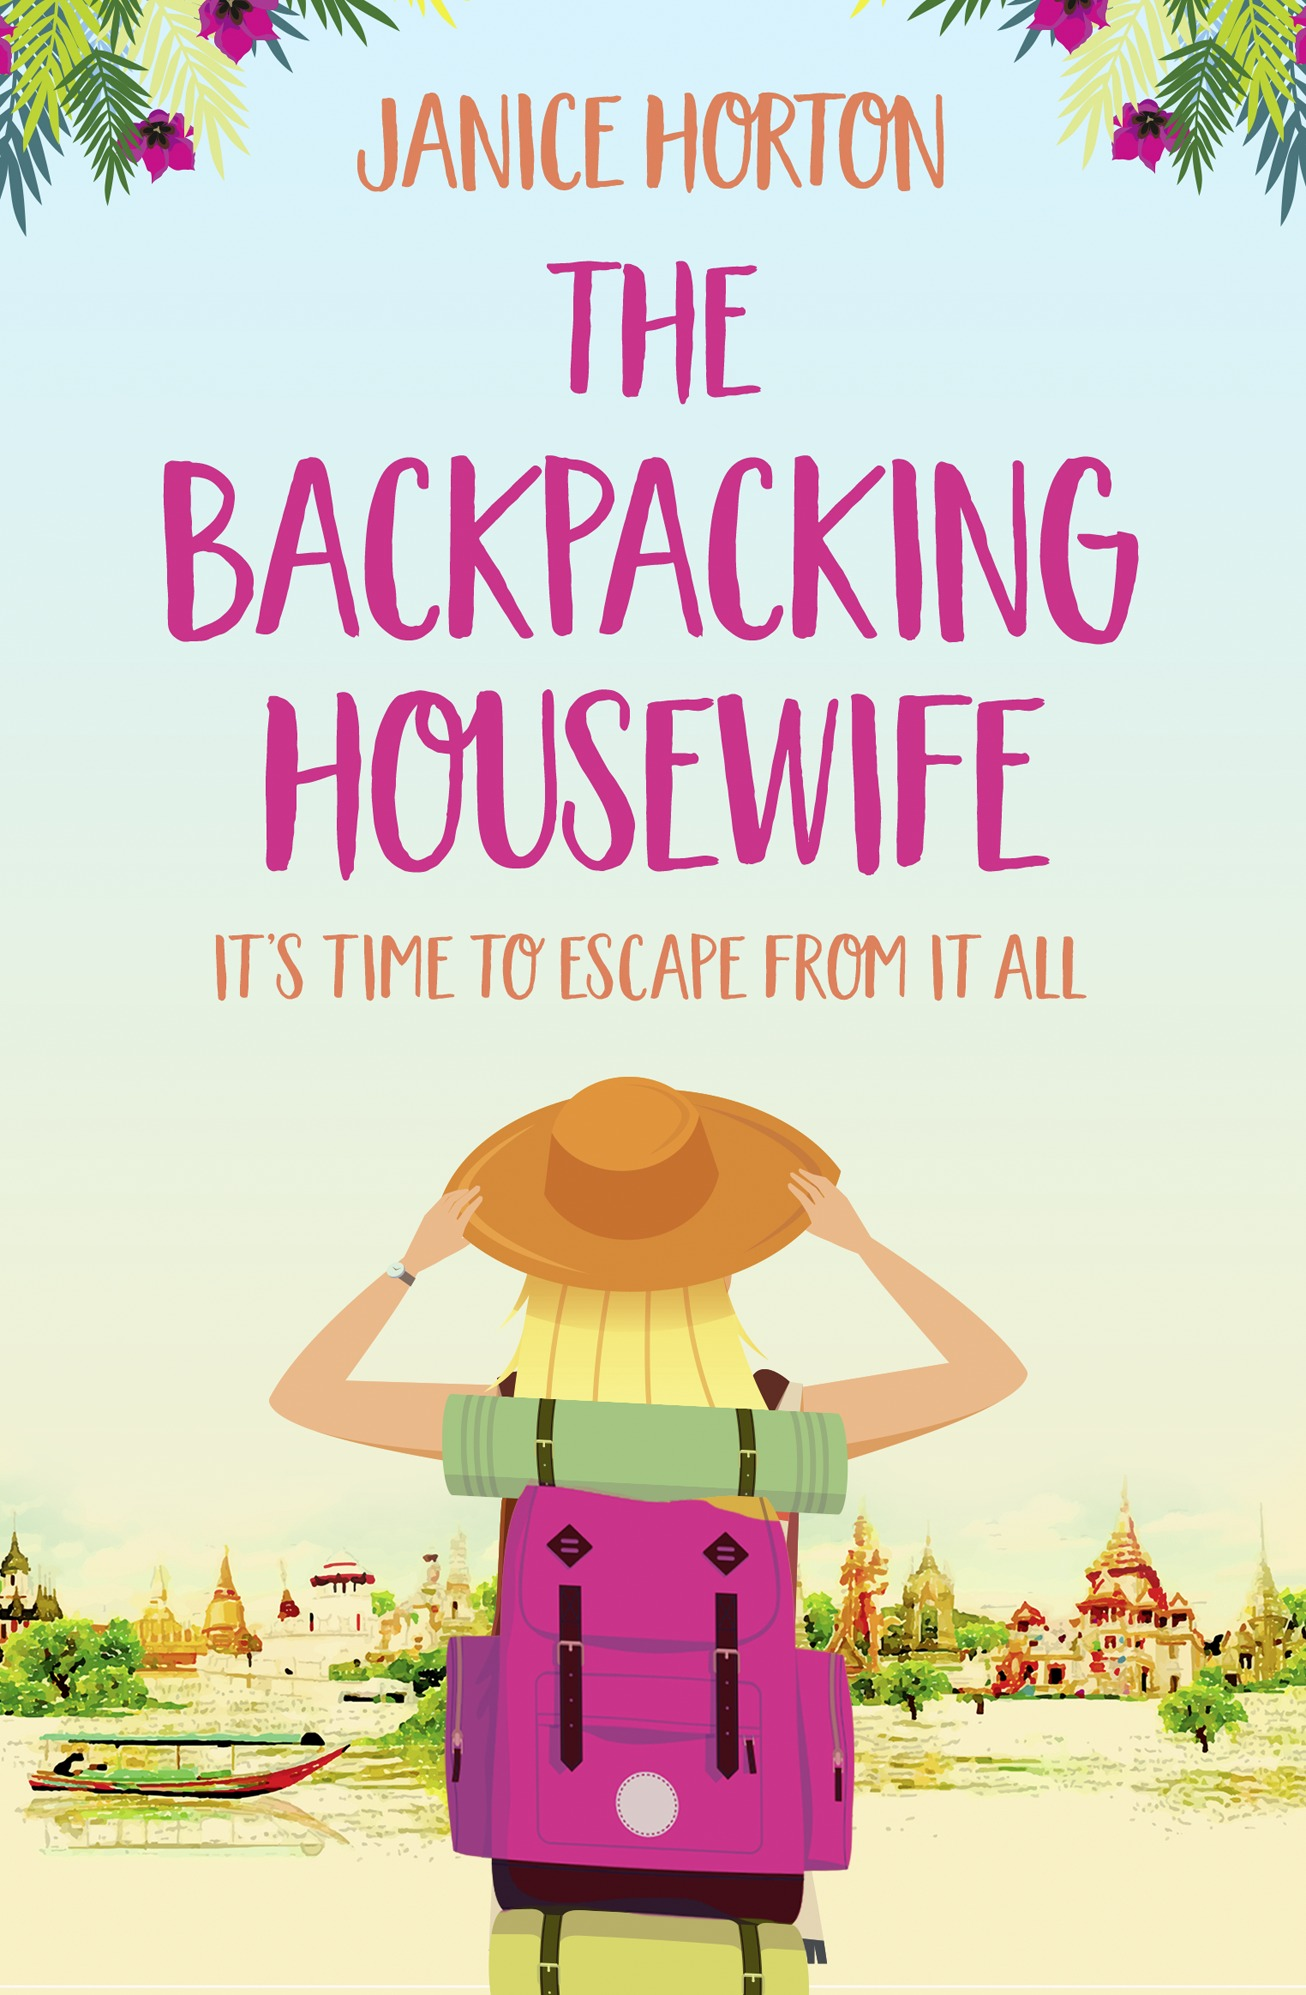 Janice Horton The Backpacking Housewife Escape around the world with this feel good novel about second chances